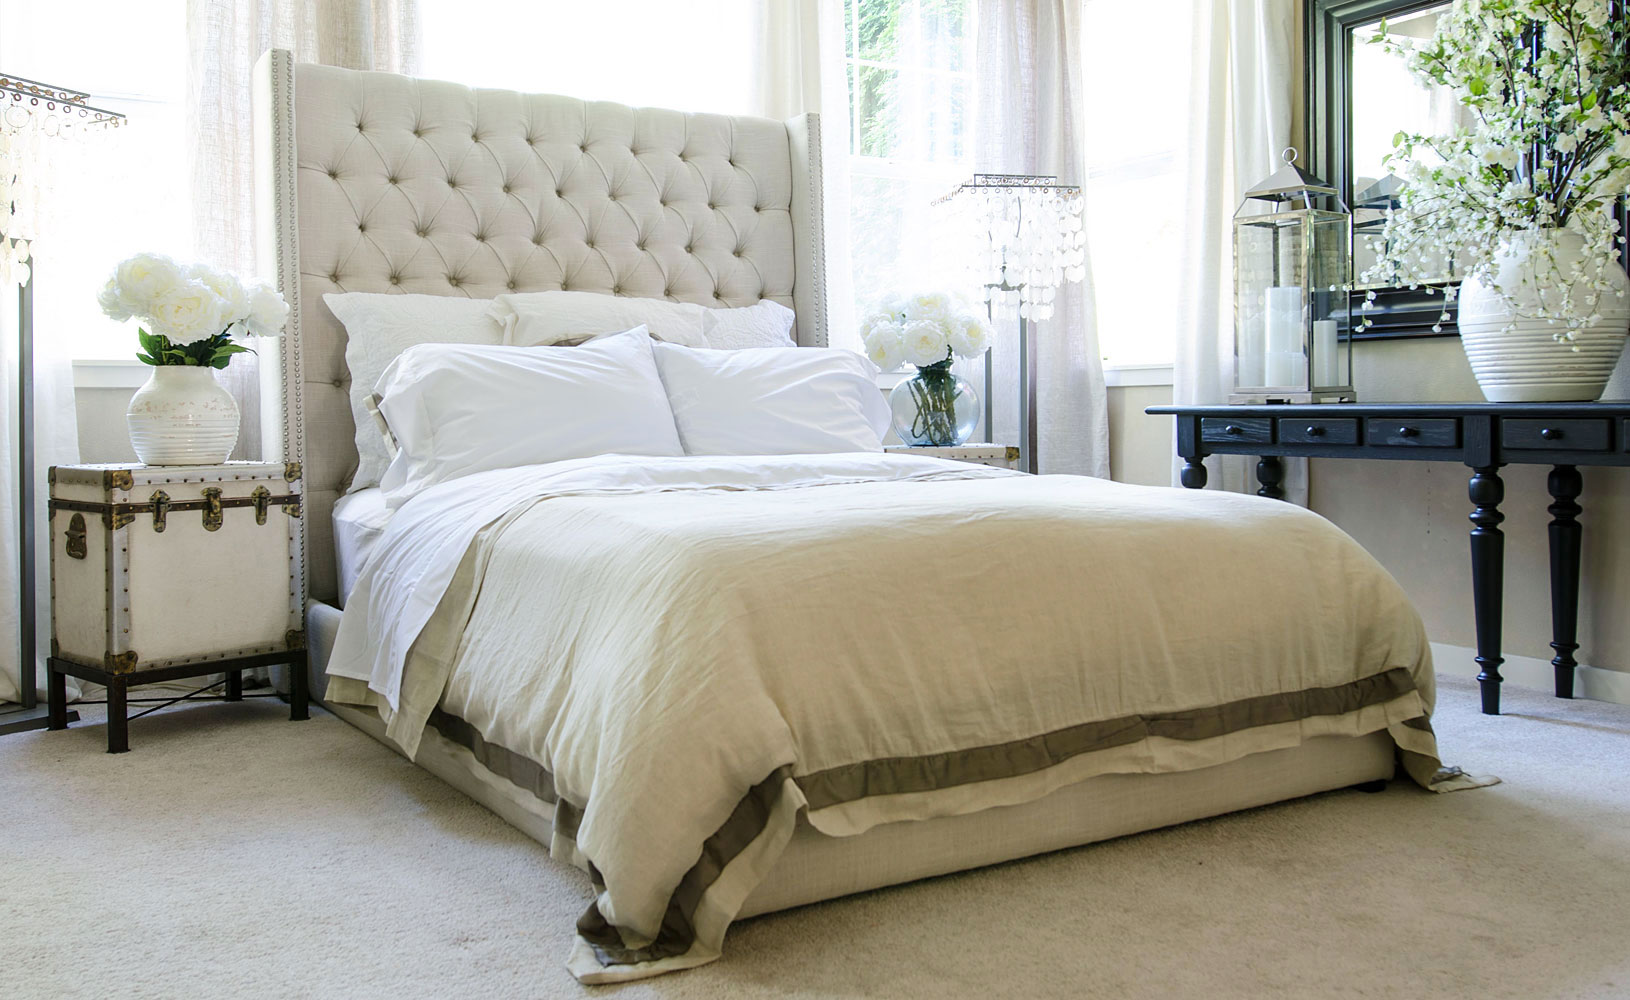 King Size Platform Bed With Upholstered Headboard